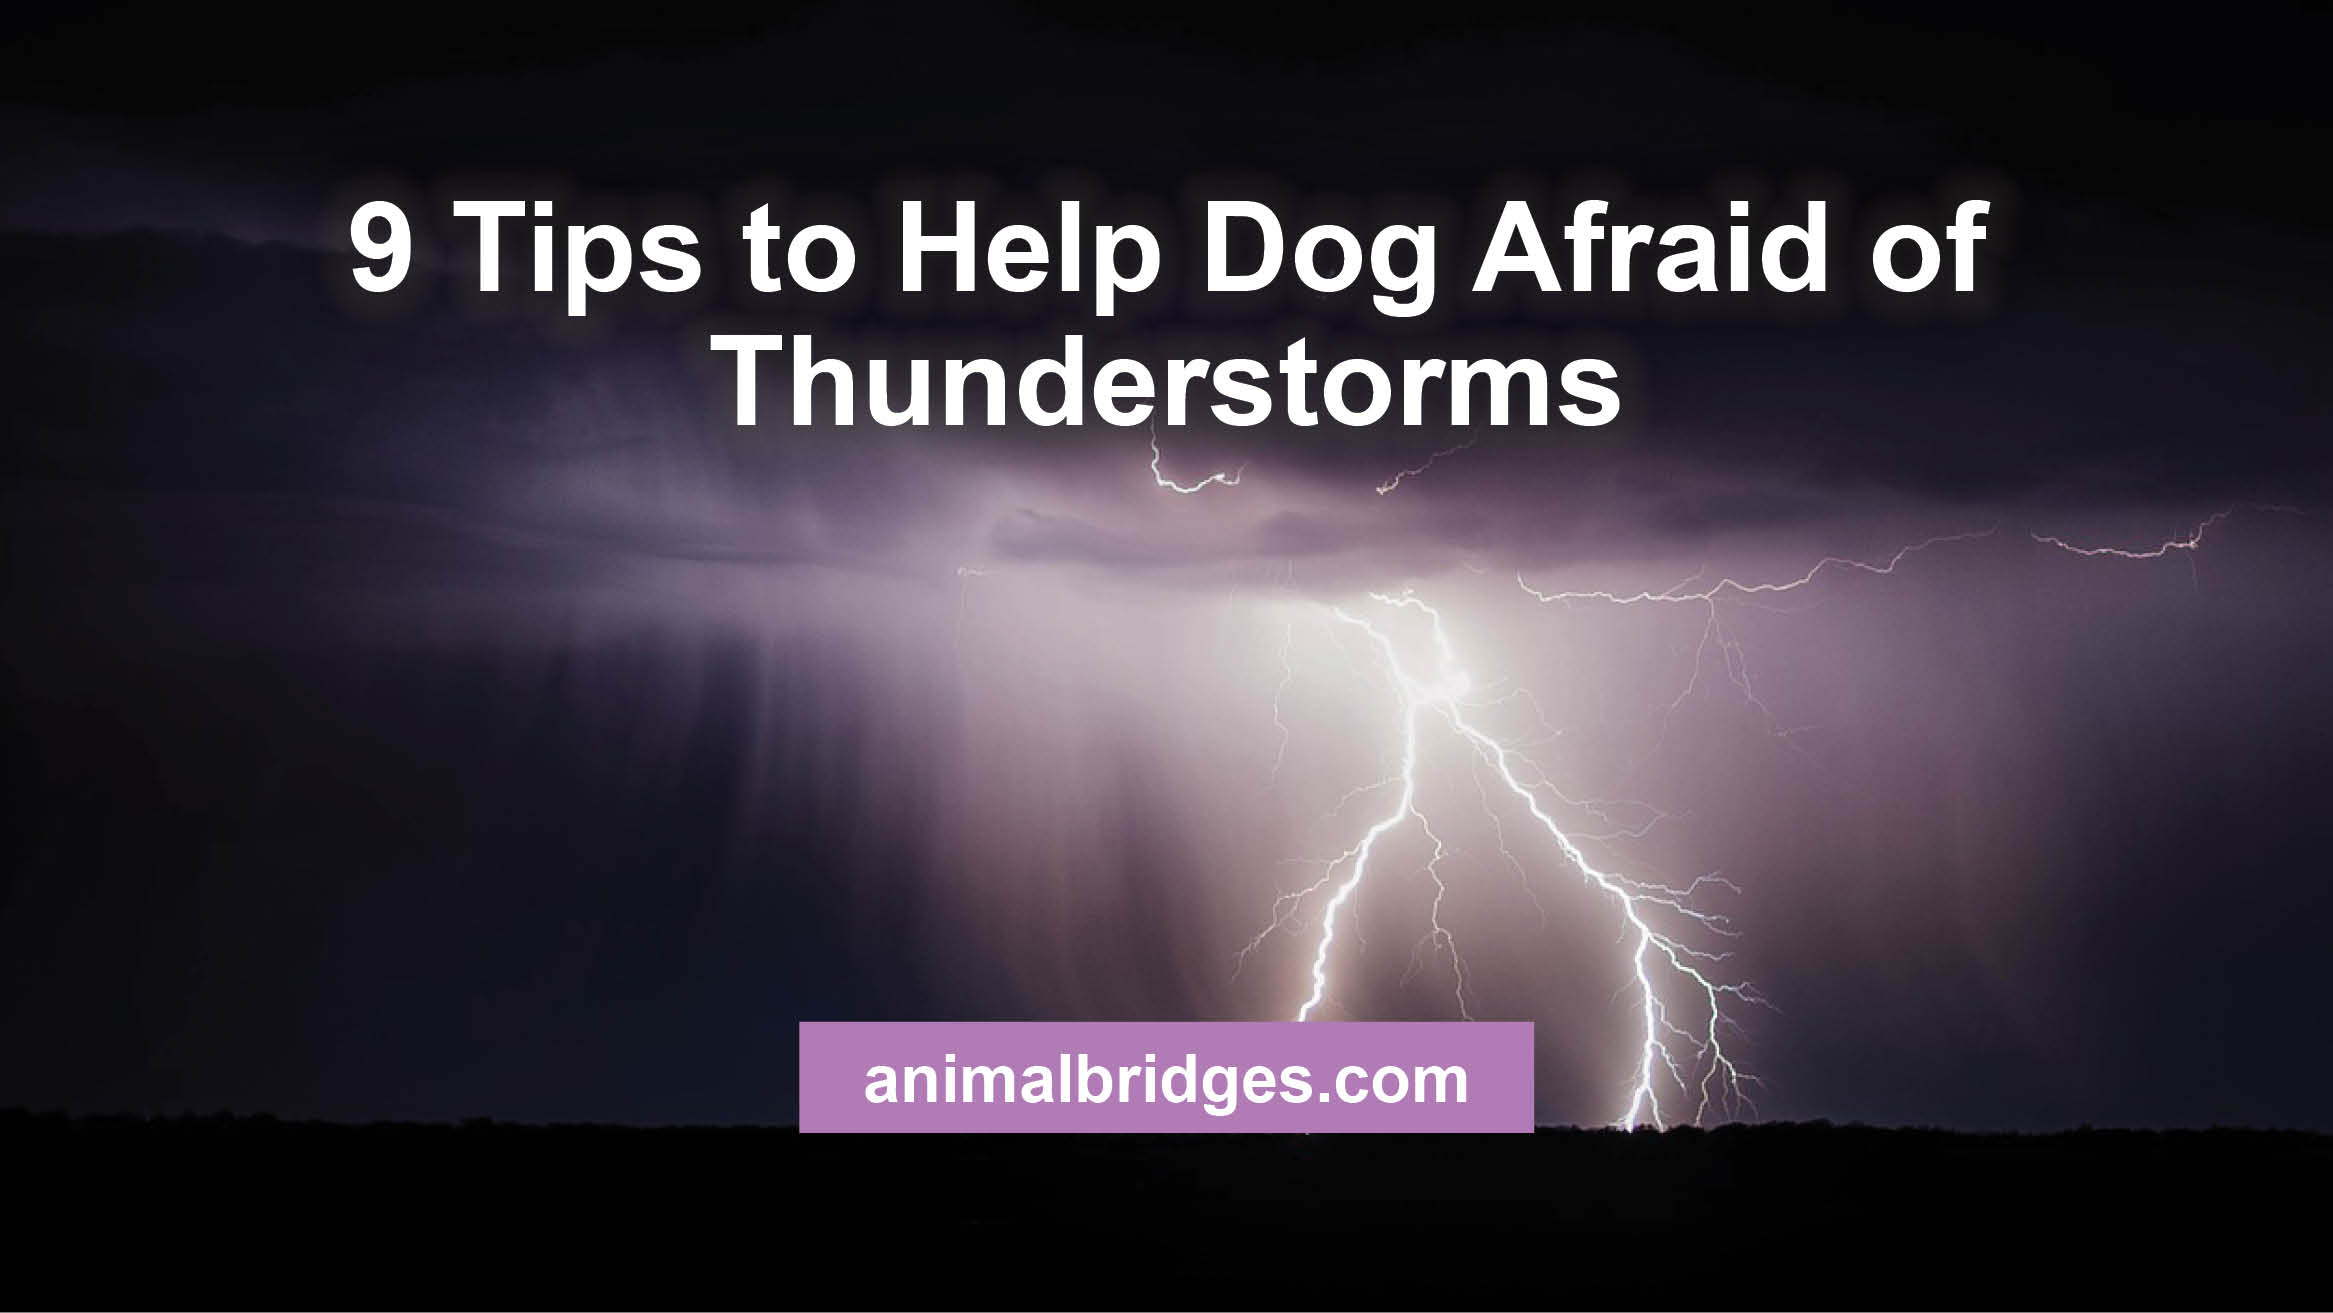 9 Tips to Help Dog Afraid of Thunderstorms